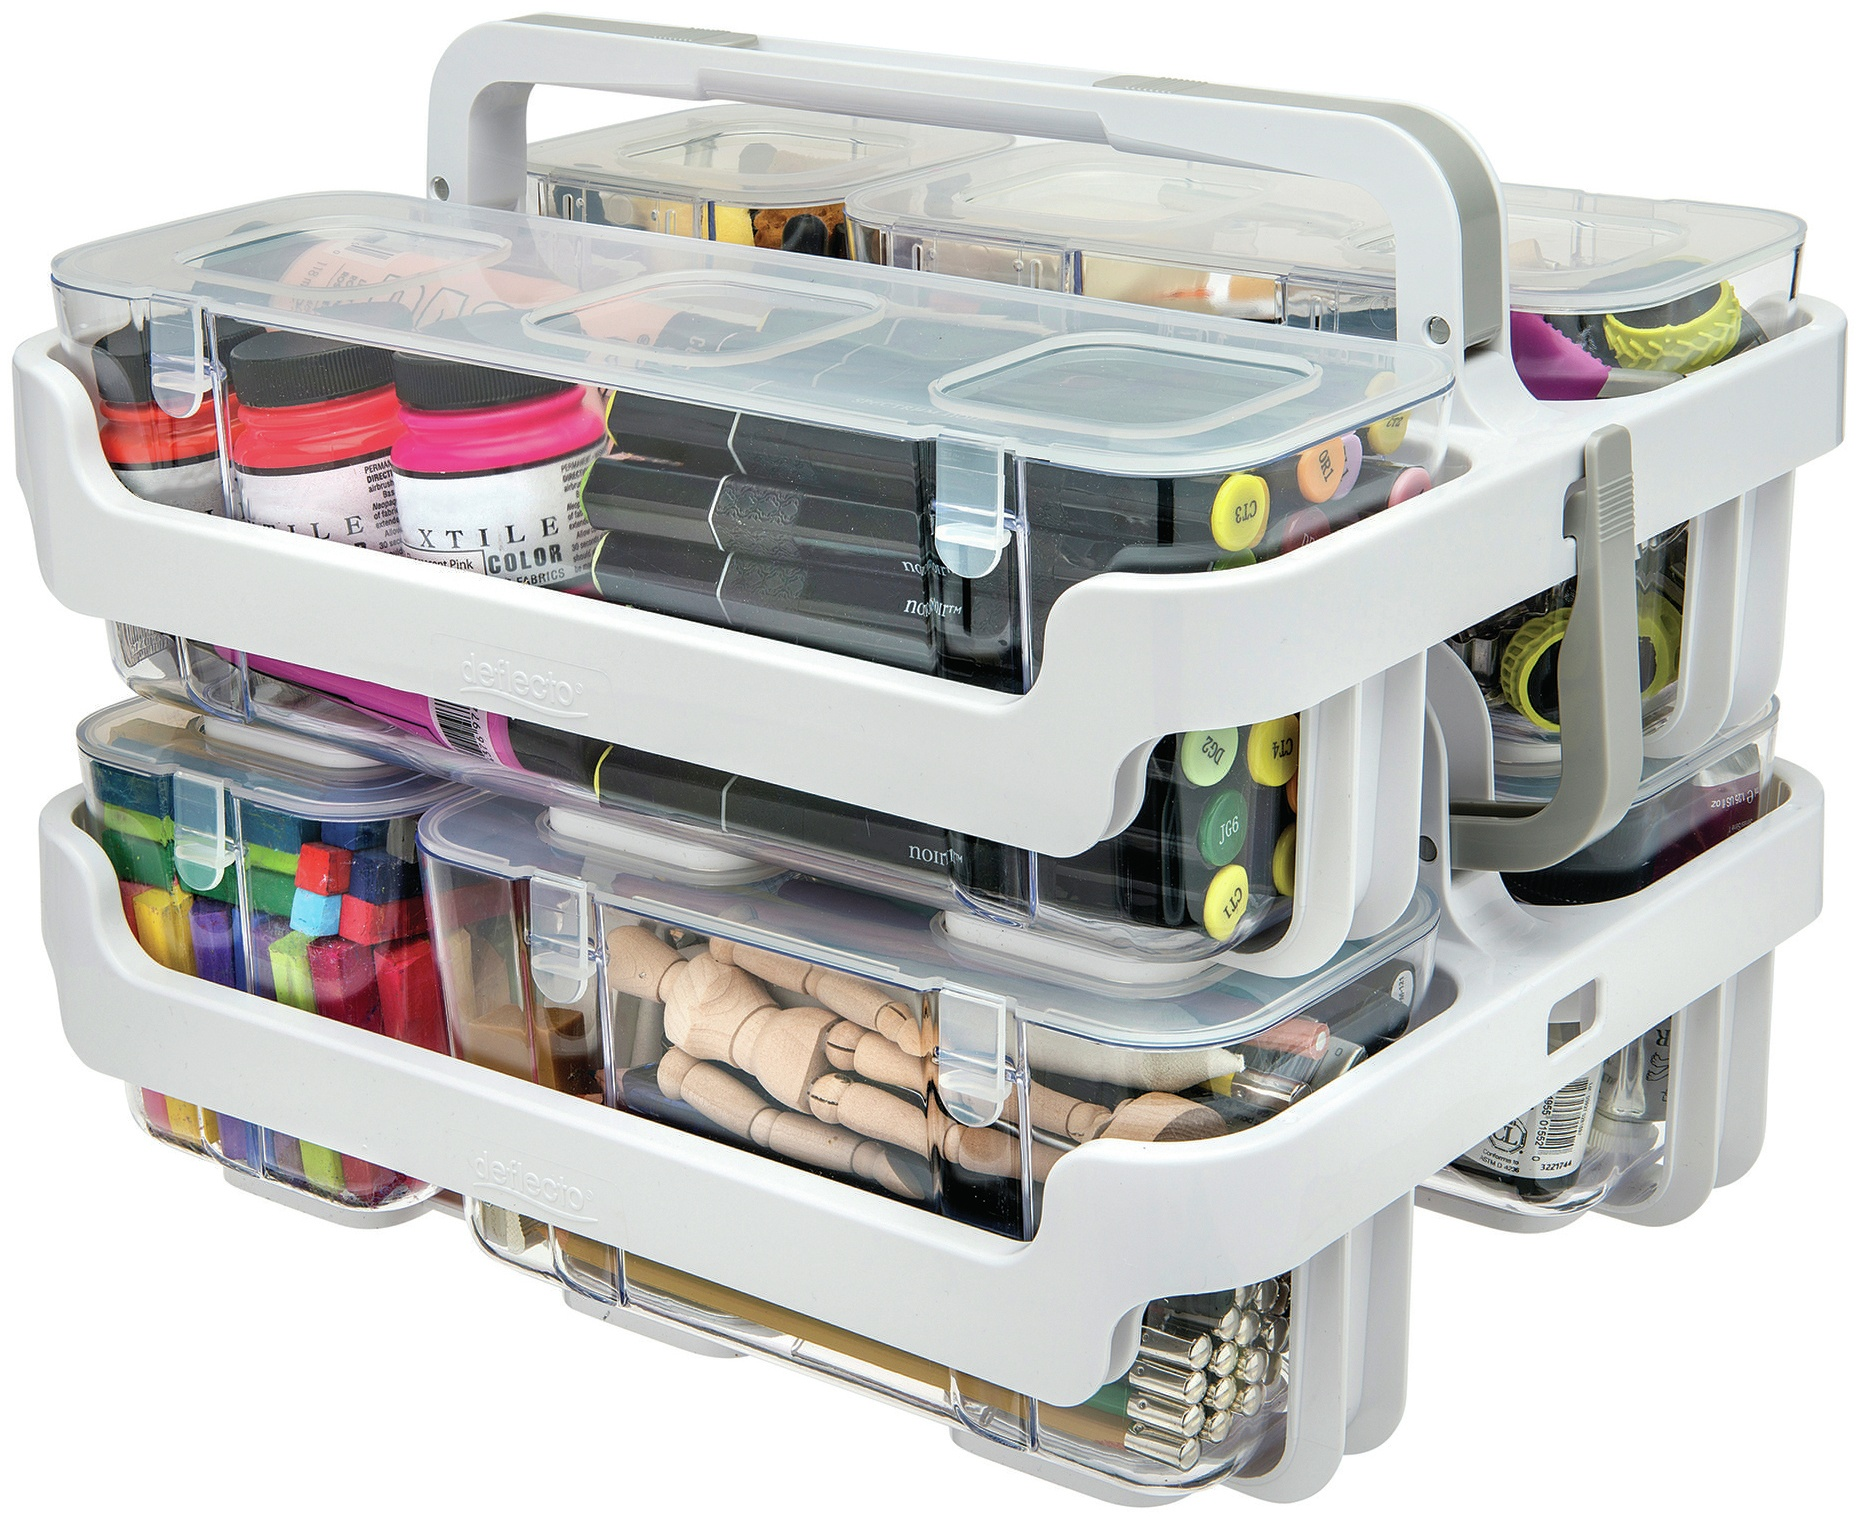 Deflecto Caddy Organizer White and Clear 29003CR Stackable with Three Compartments 4 Pieces